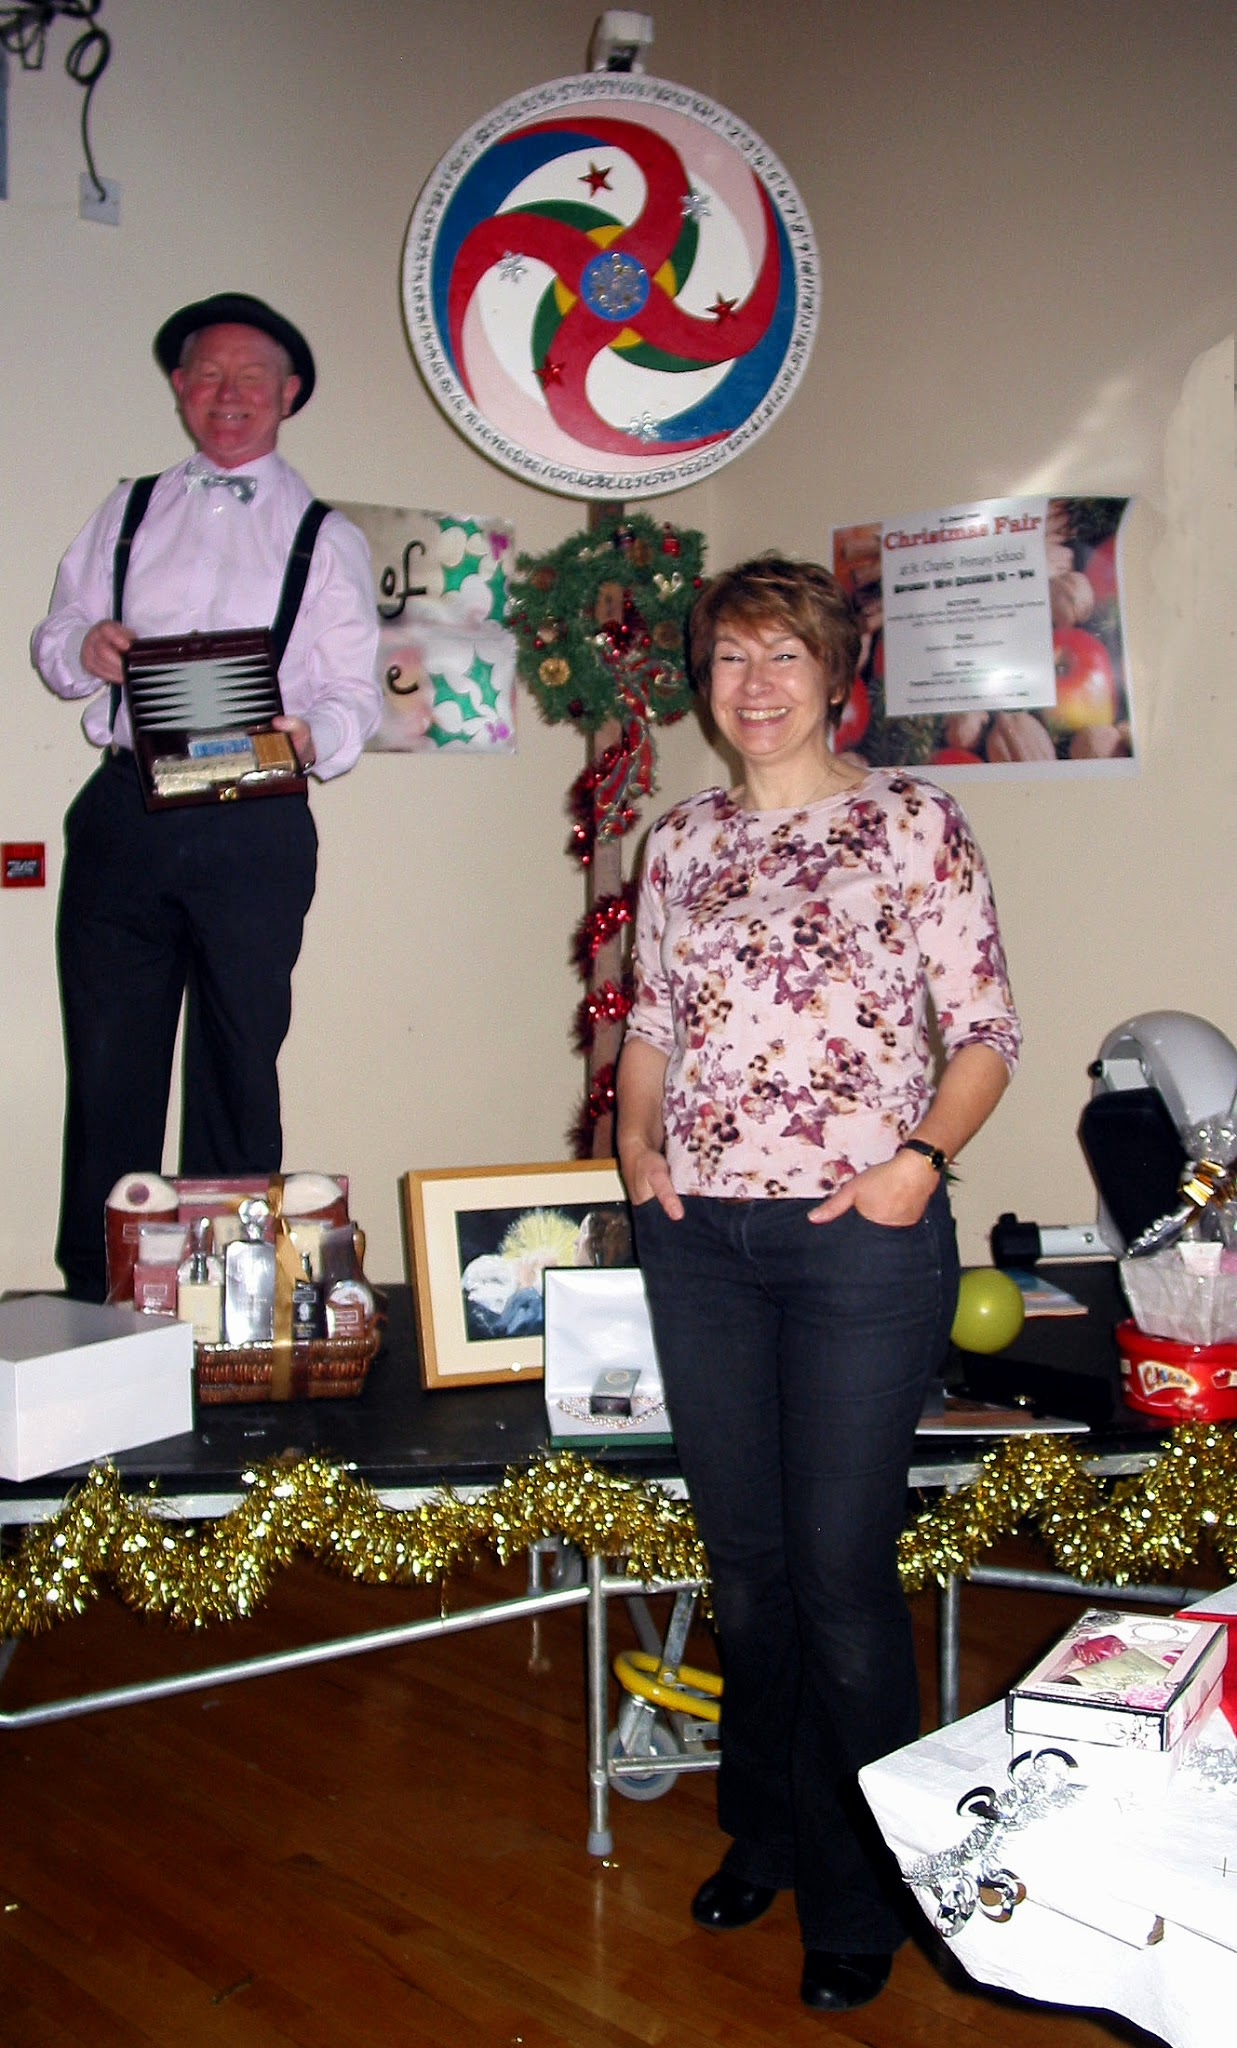 Photo: Karin overseeing that after everyone's hard work all is well & Chris running the Wheel of Fortune.